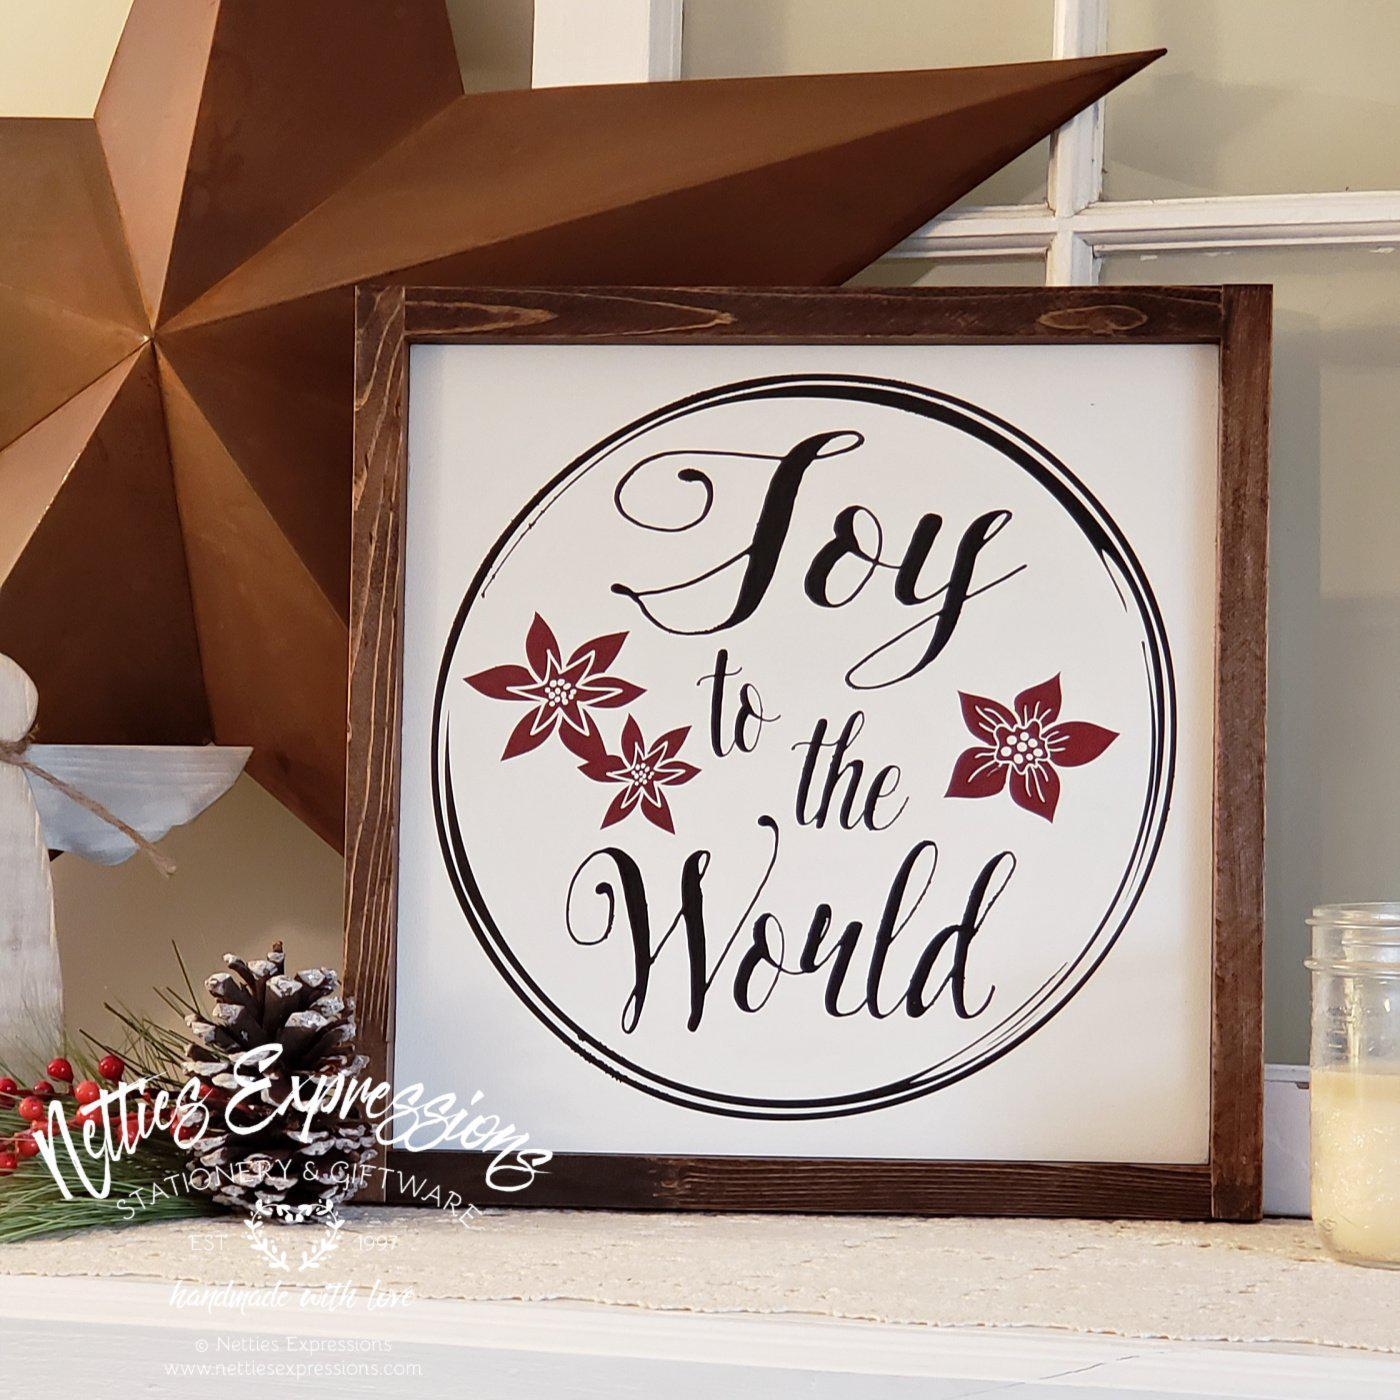 Joy to the World - Rustic Wood Christmas Sign - Netties Expressions